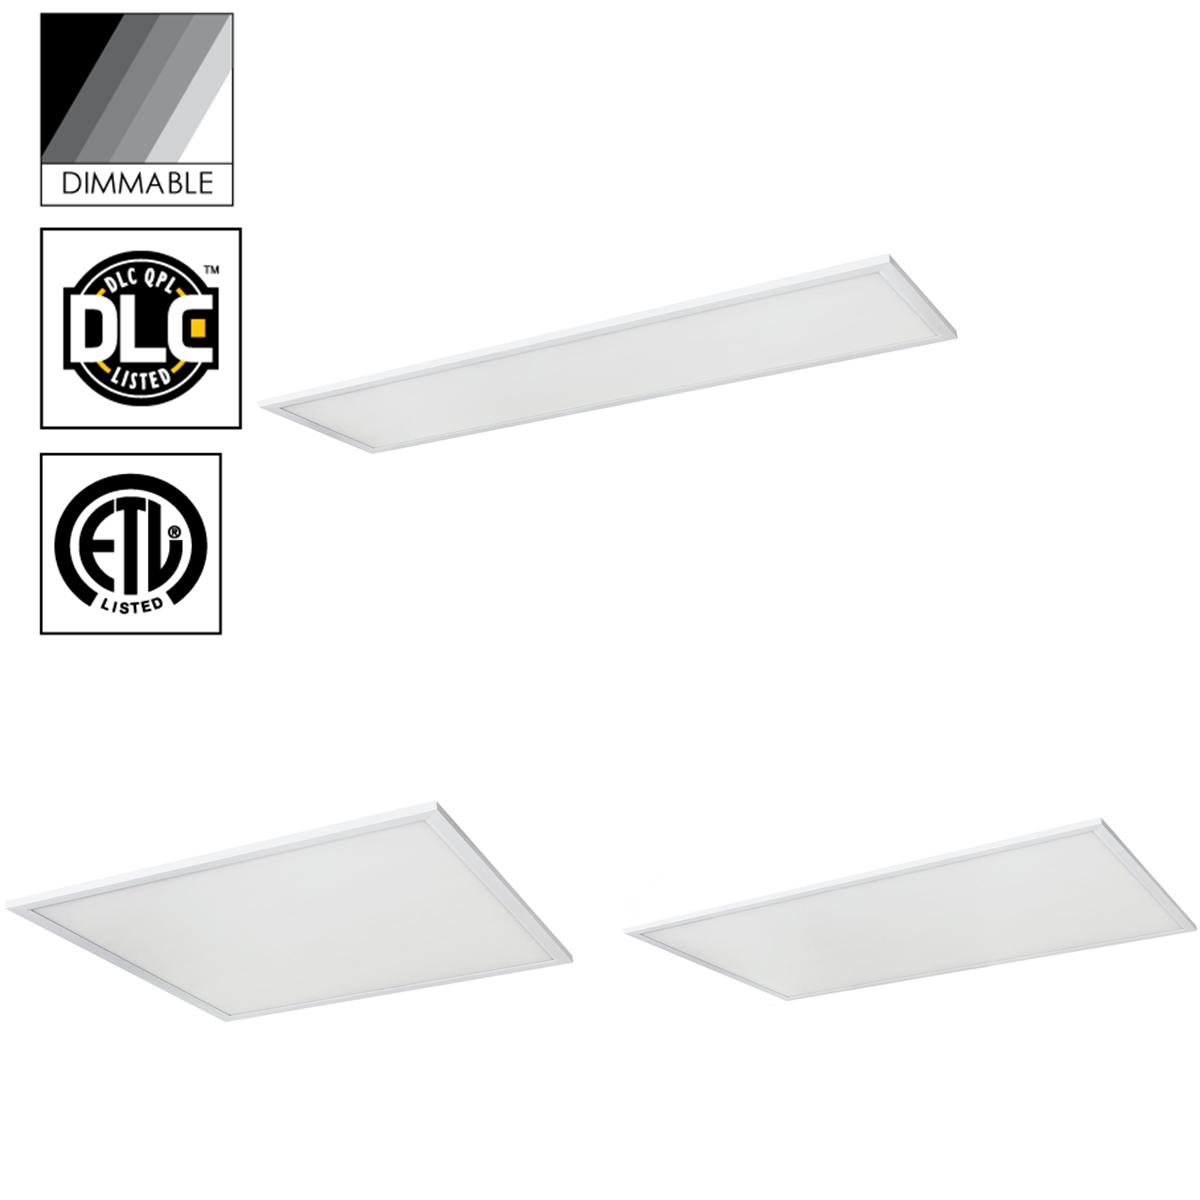 Pack of 2 2X4 Rectangle LED Lay-In Troffer Light Fixture